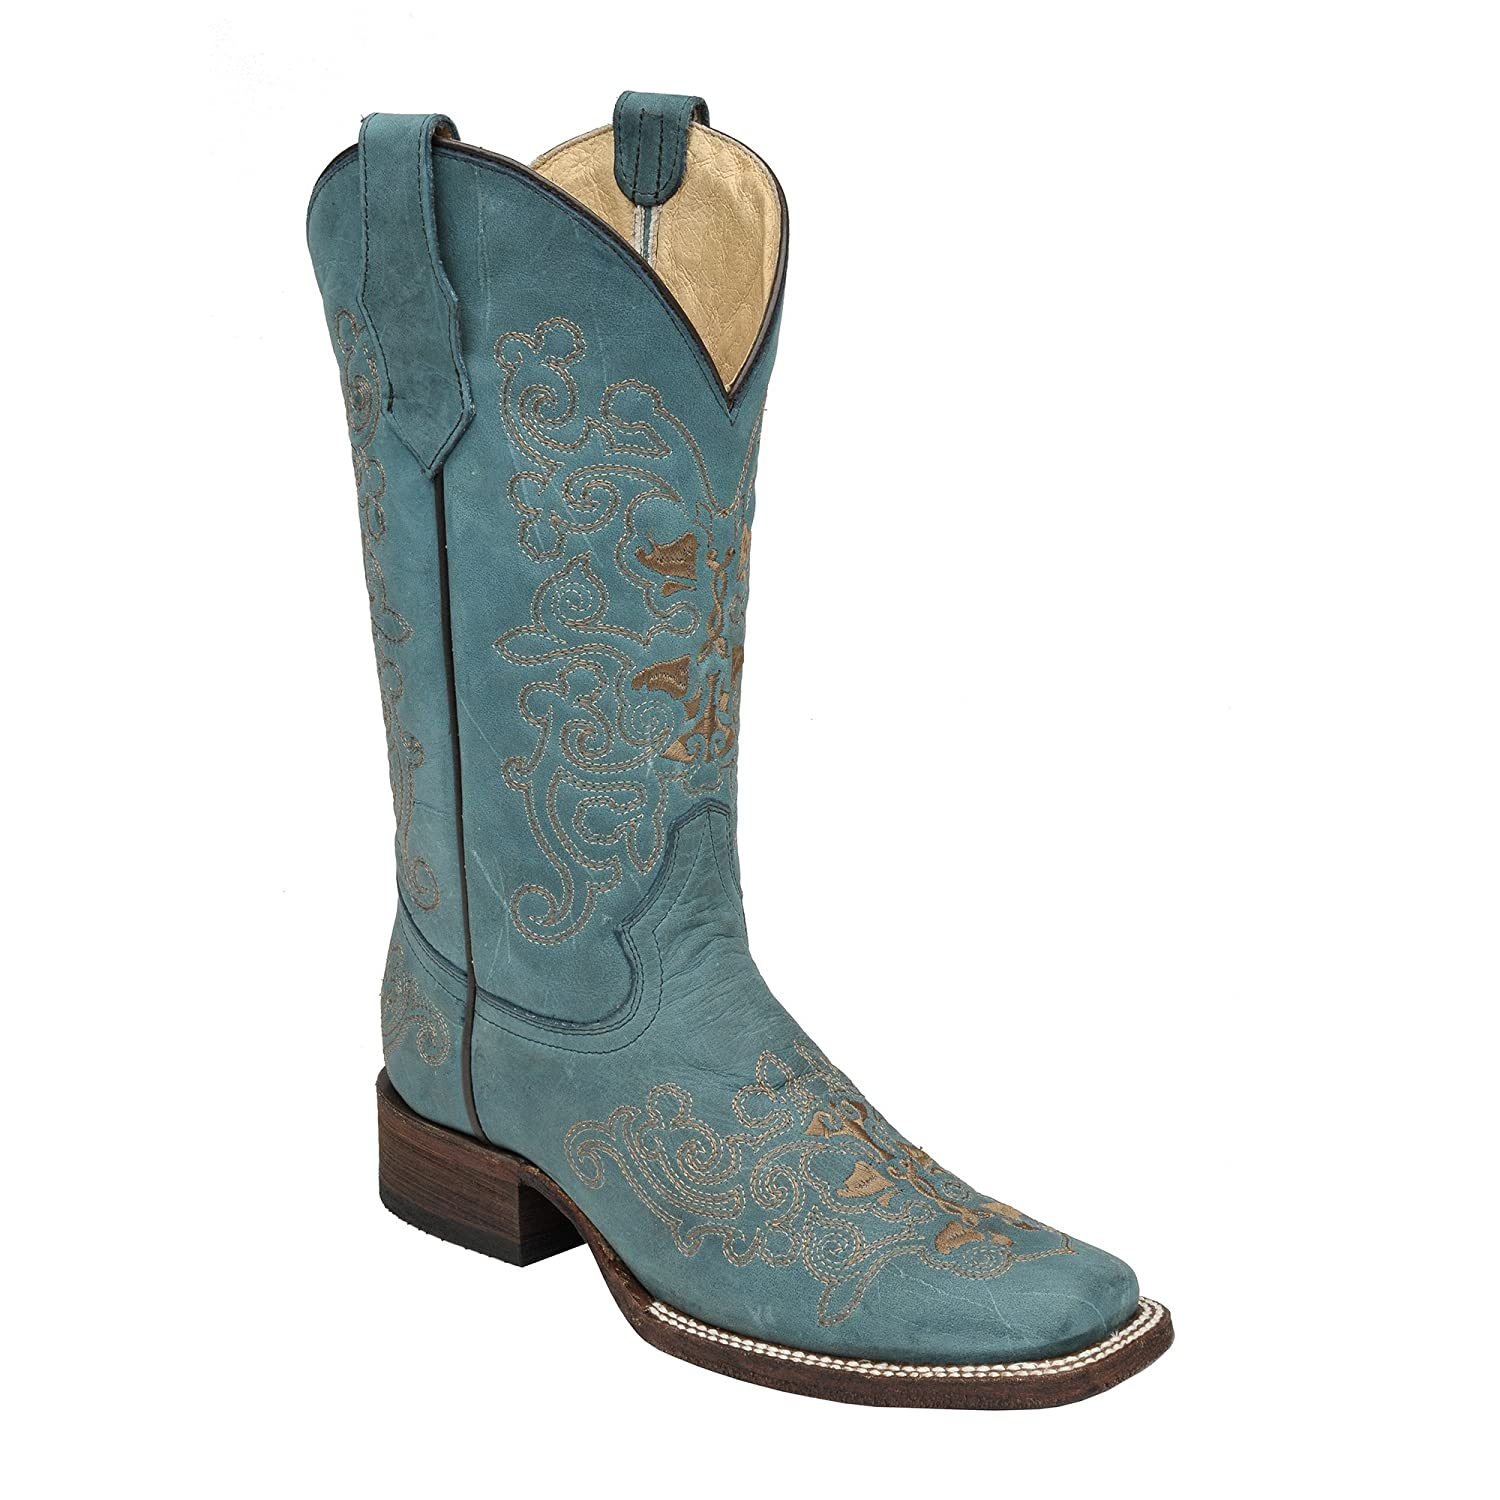 Corral Circle G Women's Square Toe Western Boots B0134EF1PM 8 B(M) US|Turquoise